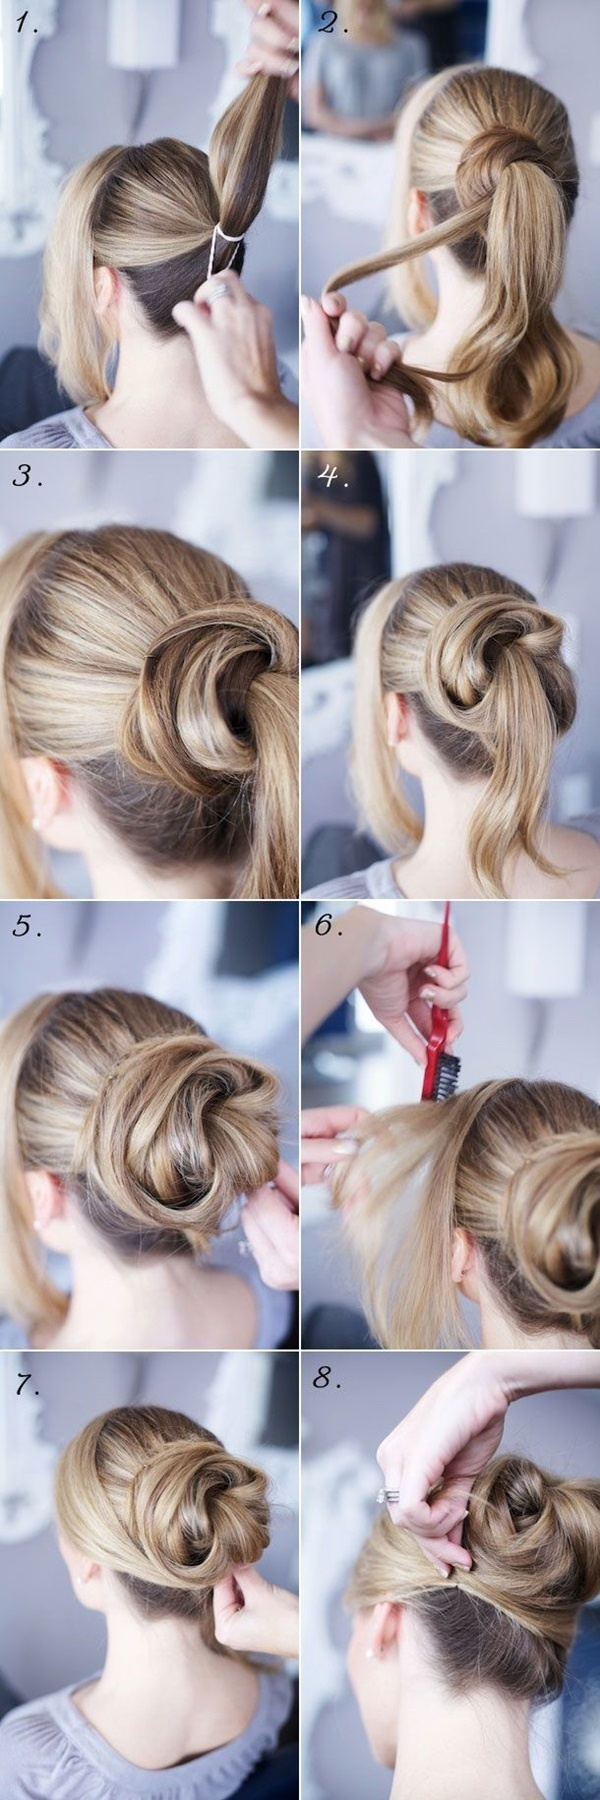 Easy Bun Hairstyles for Long Hair and Medium Hair1 (30)